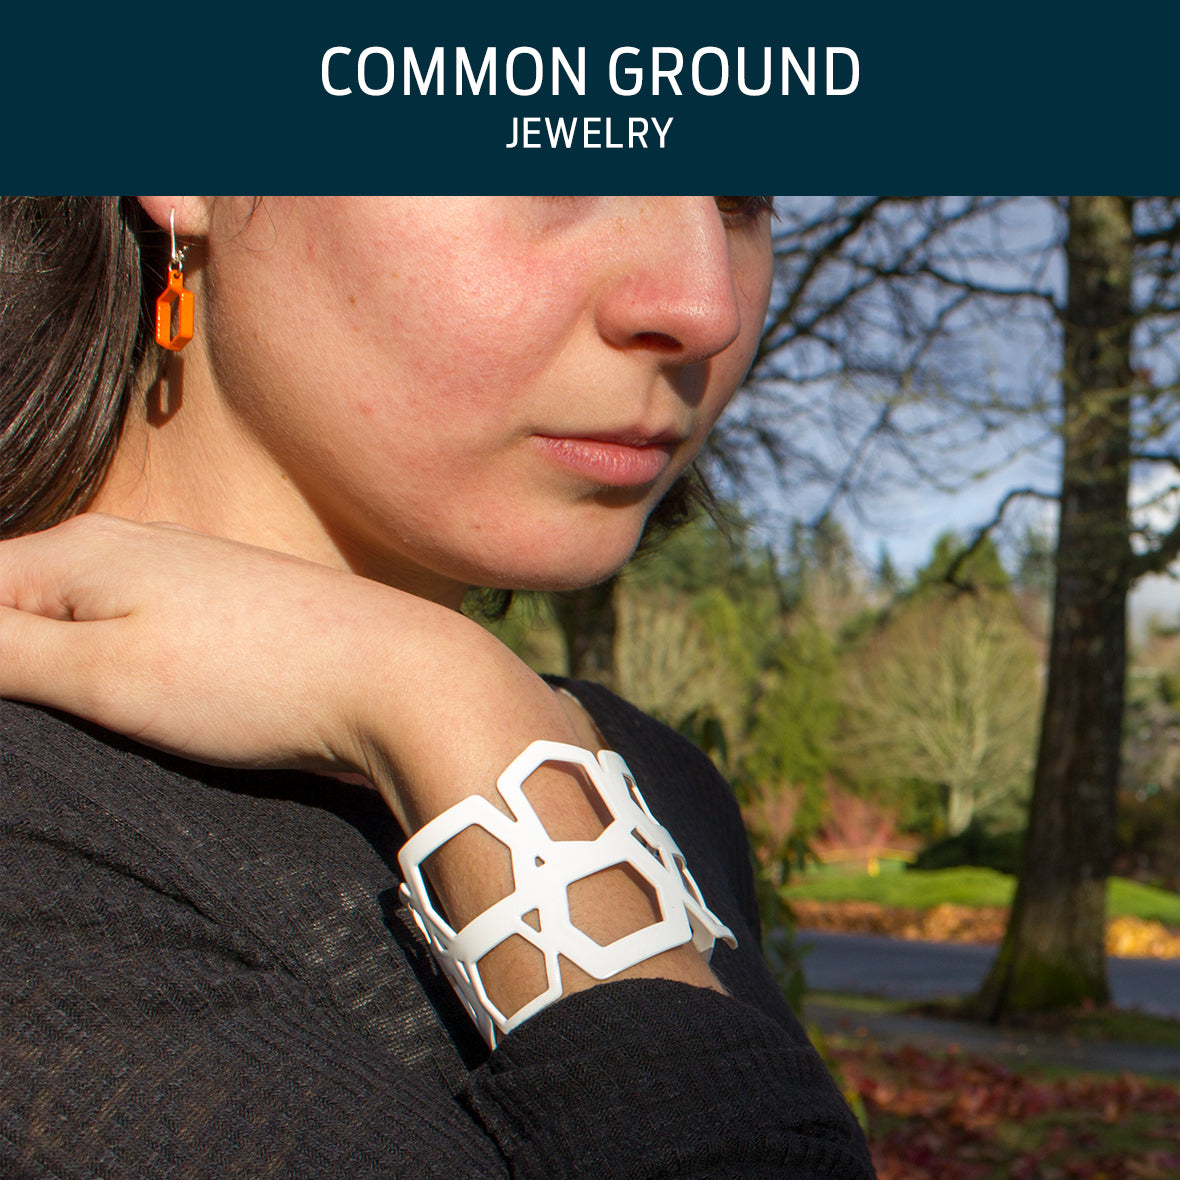 Common Ground Jewelry